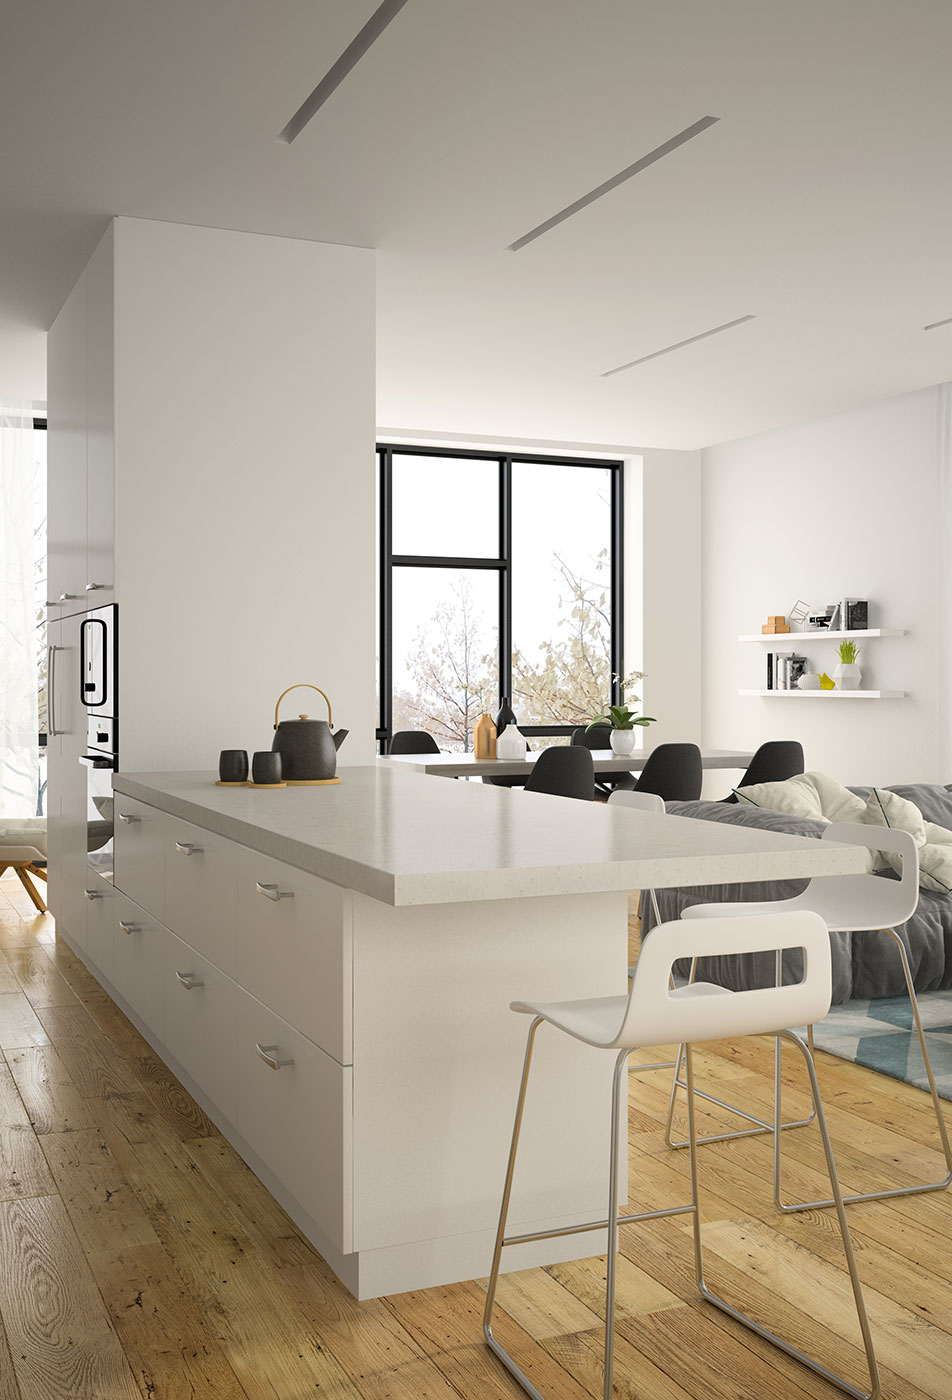 Arkeane-home-image-interieur-apropos